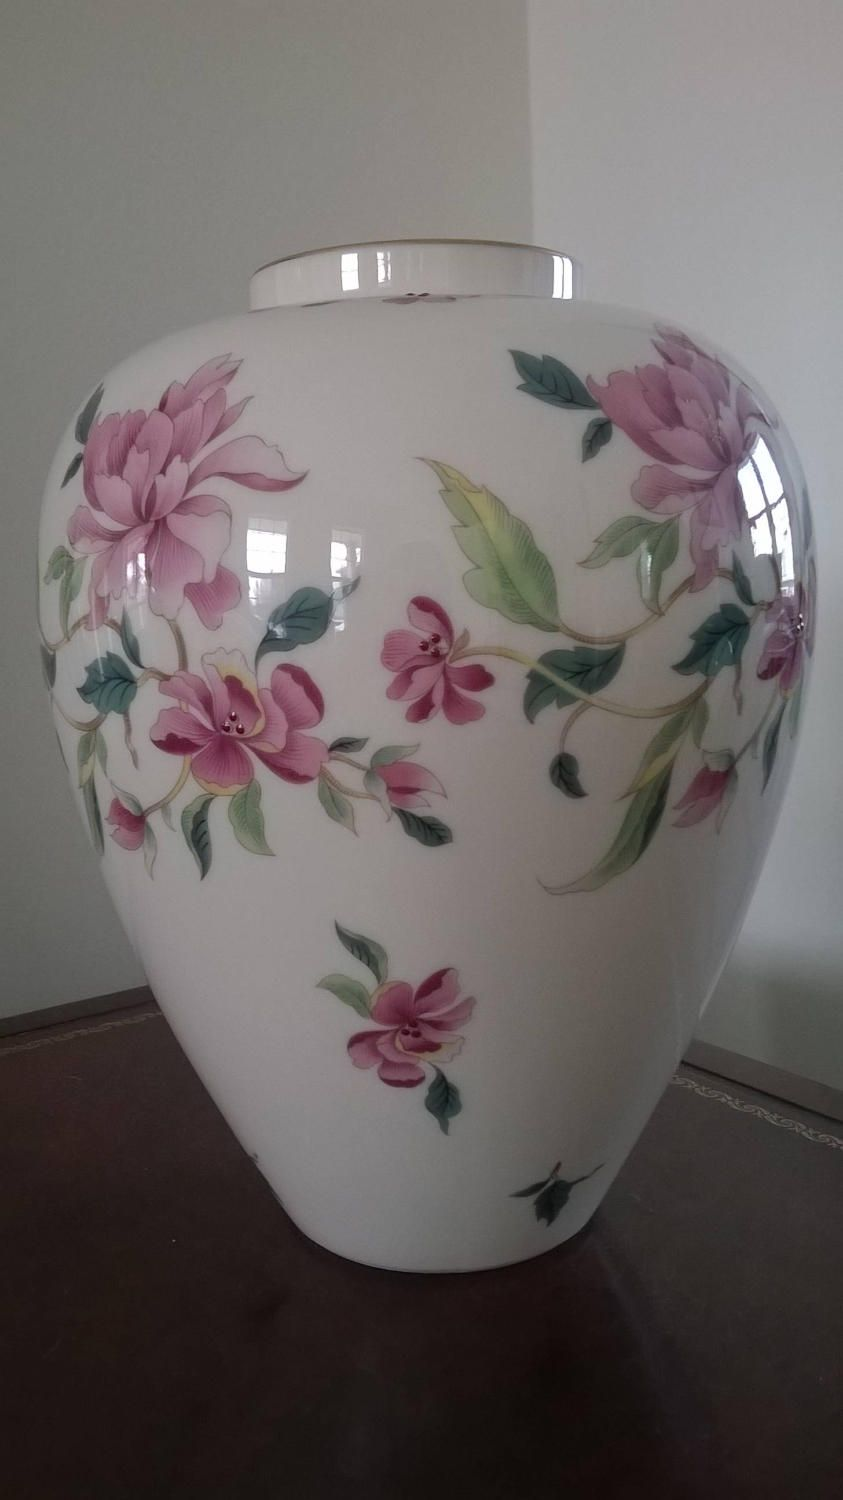 Lenox flower vase with gold trim by georgialartscrafts on etsy lenox flower vase with gold trim by georgialartscrafts on etsy reviewsmspy